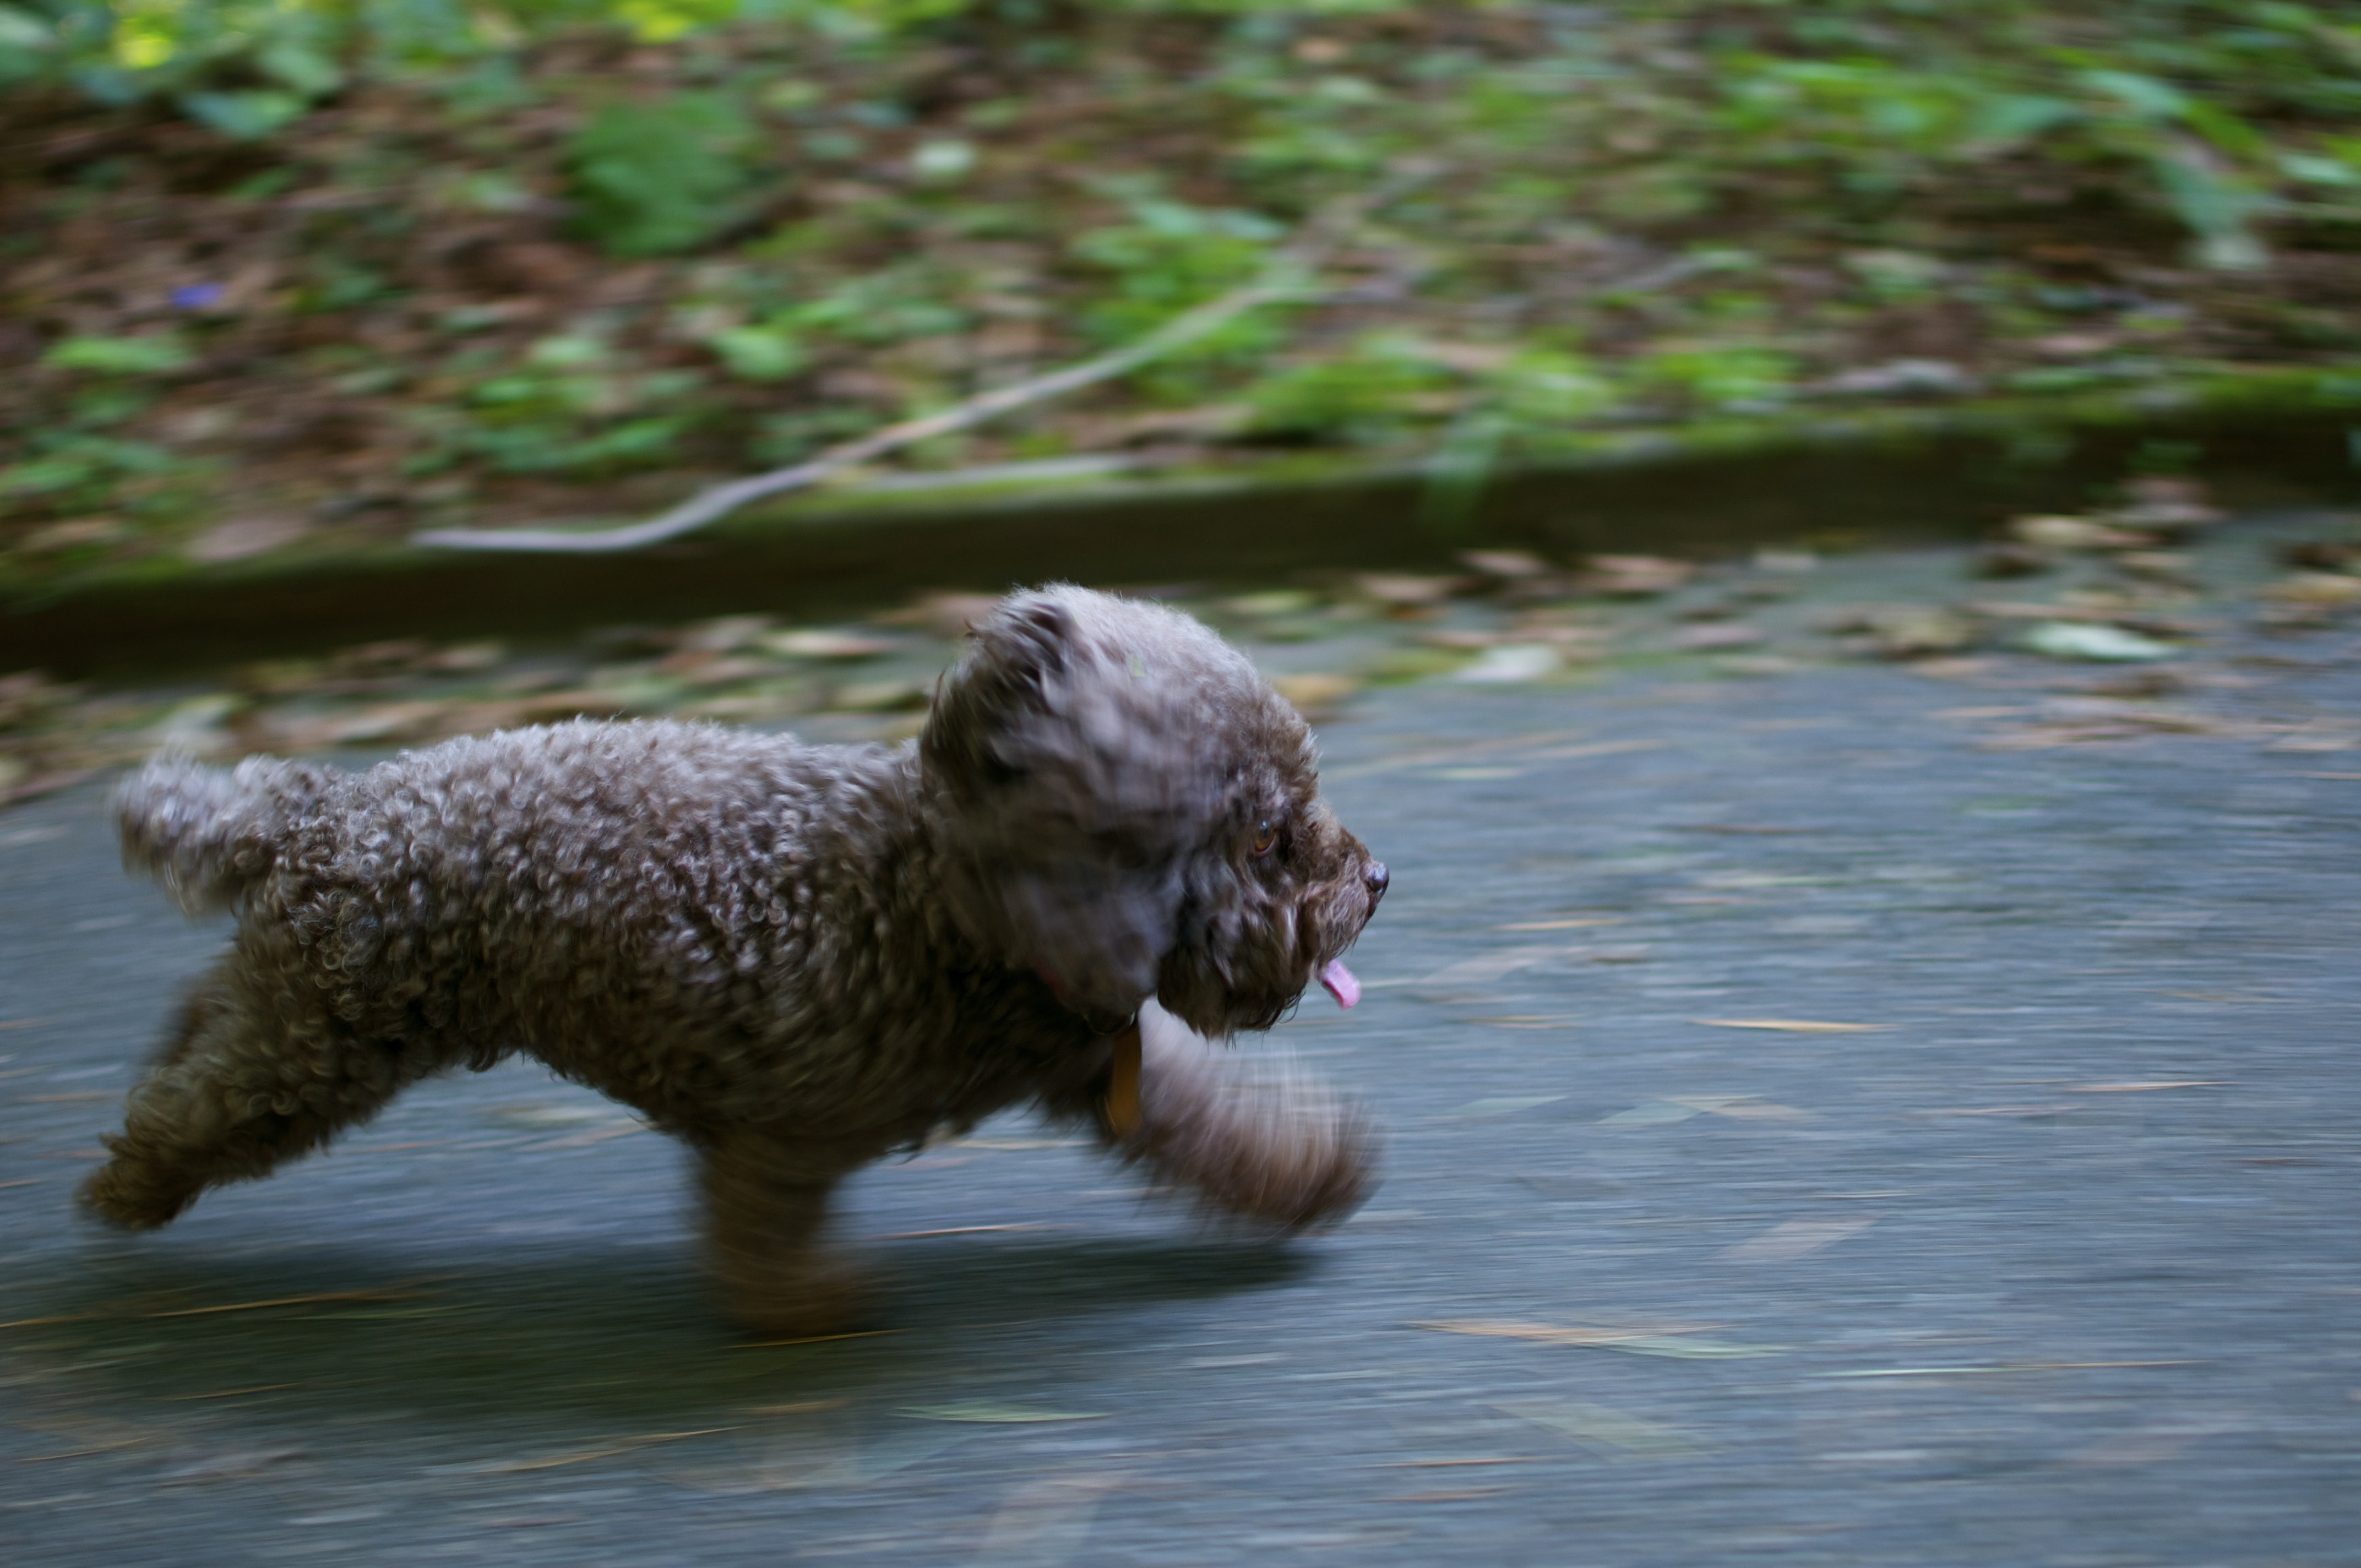 A cute little brown puppy running while sticking his tongue out